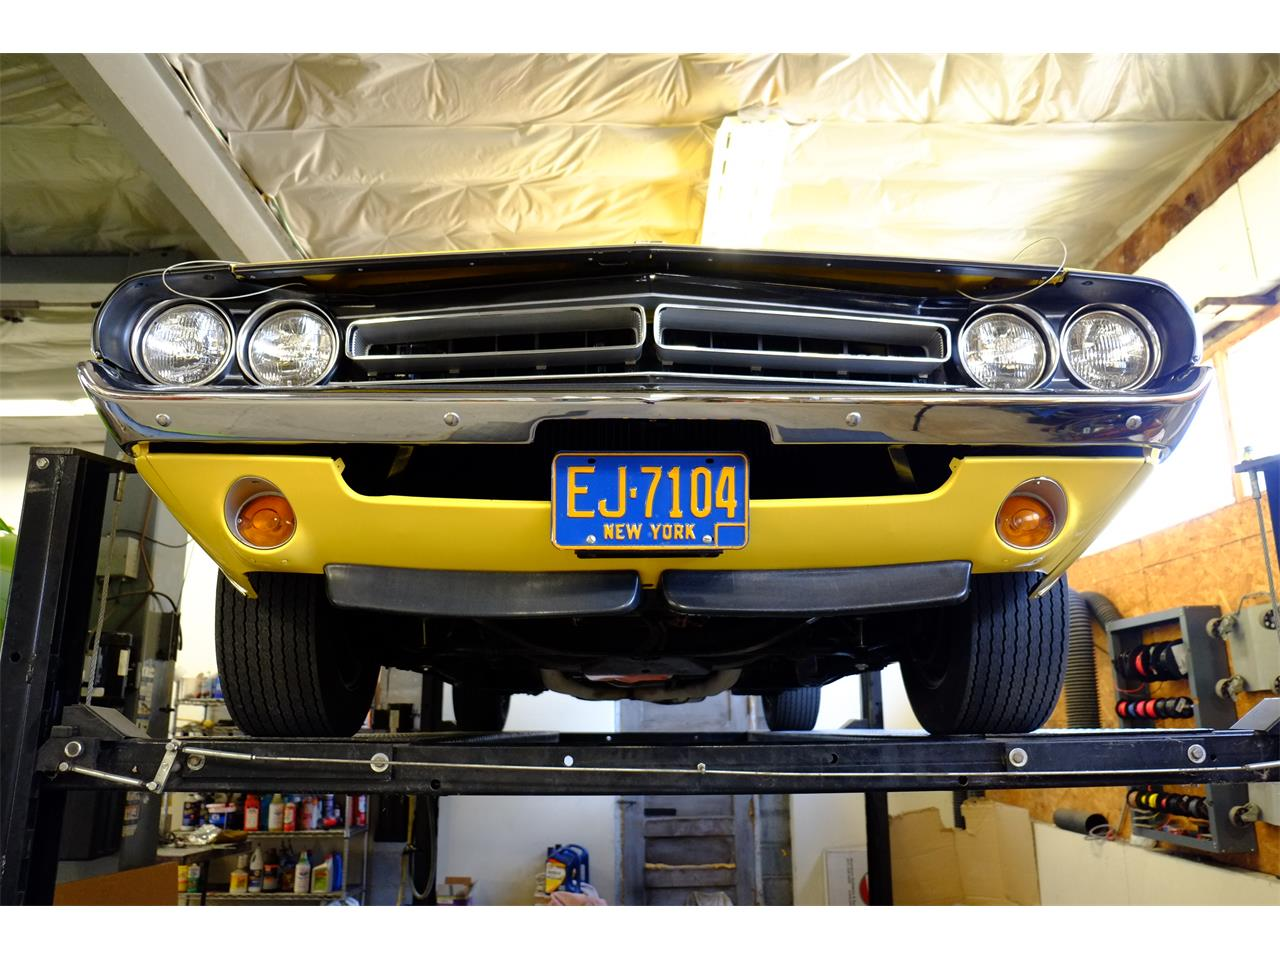 Large Picture of Classic '71 Challenger R/T 426 Hemi located in New York - JY6E